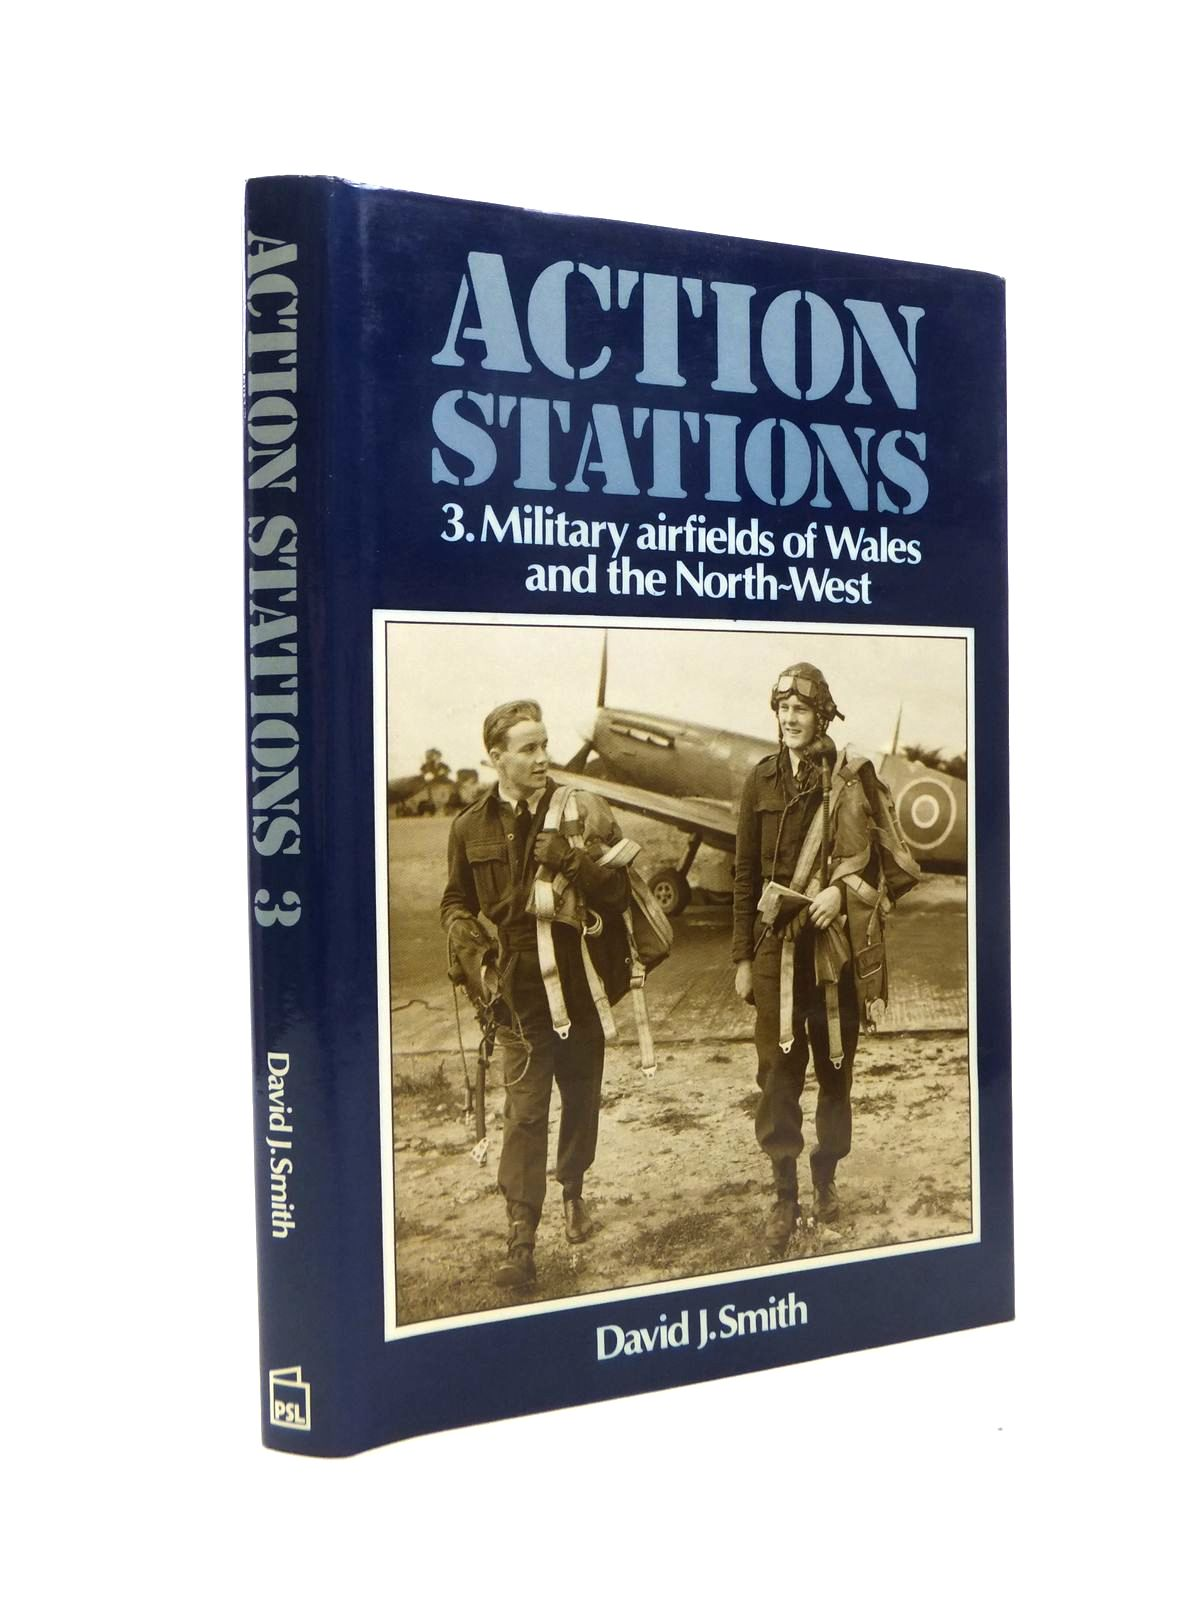 Photo of ACTION STATIONS 3 MILITARY AIRFIELDS OF WALES AND THE NORTH-WEST written by Smith, David J. published by Patrick Stephens (STOCK CODE: 1208575)  for sale by Stella & Rose's Books